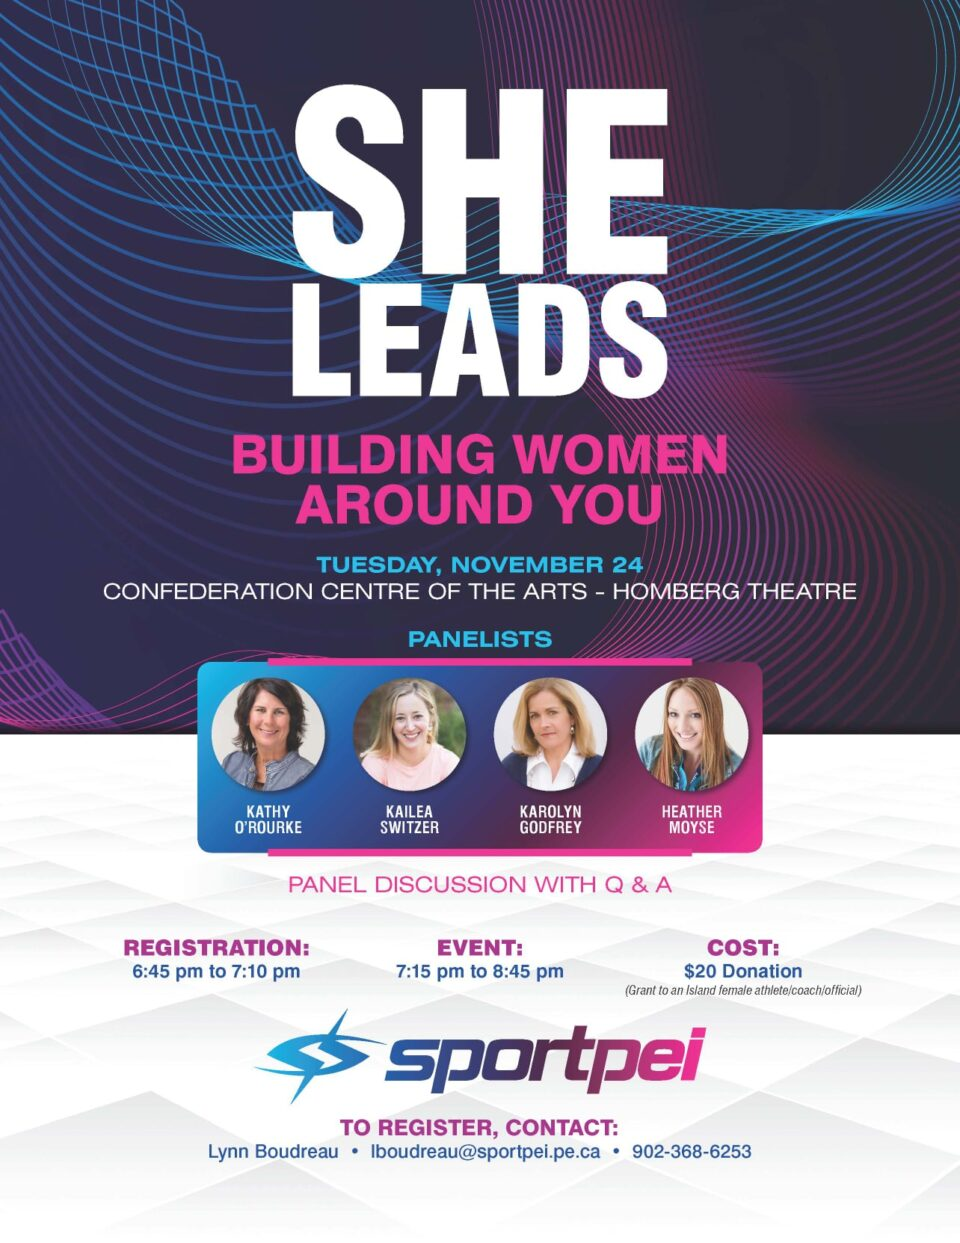 "Building Women Around You: ""She Leads"" event with curler Kathy O'Rourke among panelists @ Confederation Centre of the Arts"